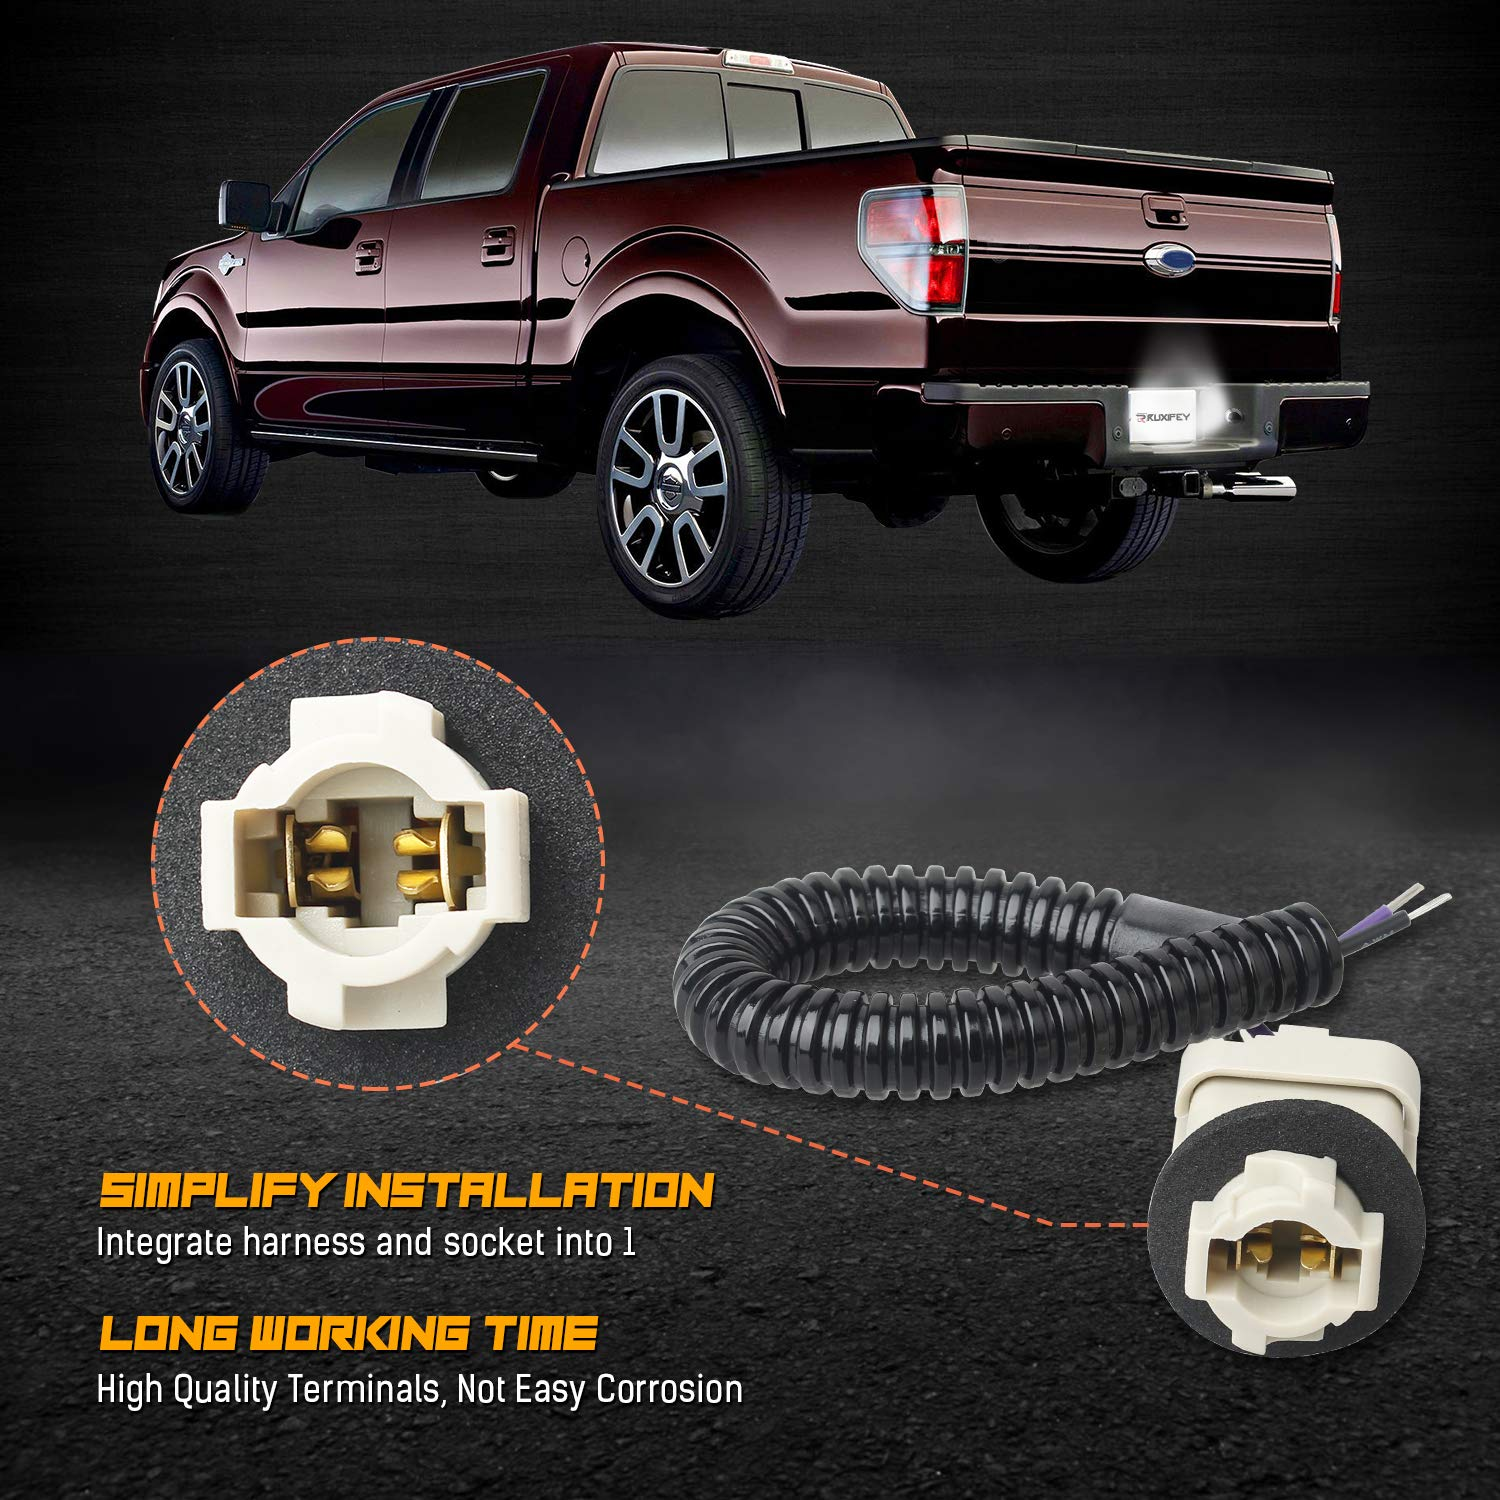 LED License Plate Light Lamp Assembly Error Free Tag Light Compatible With Ford F150 F250 F350 F450 F550 Superduty Ranger Explorer Bronco Excursion Expedition